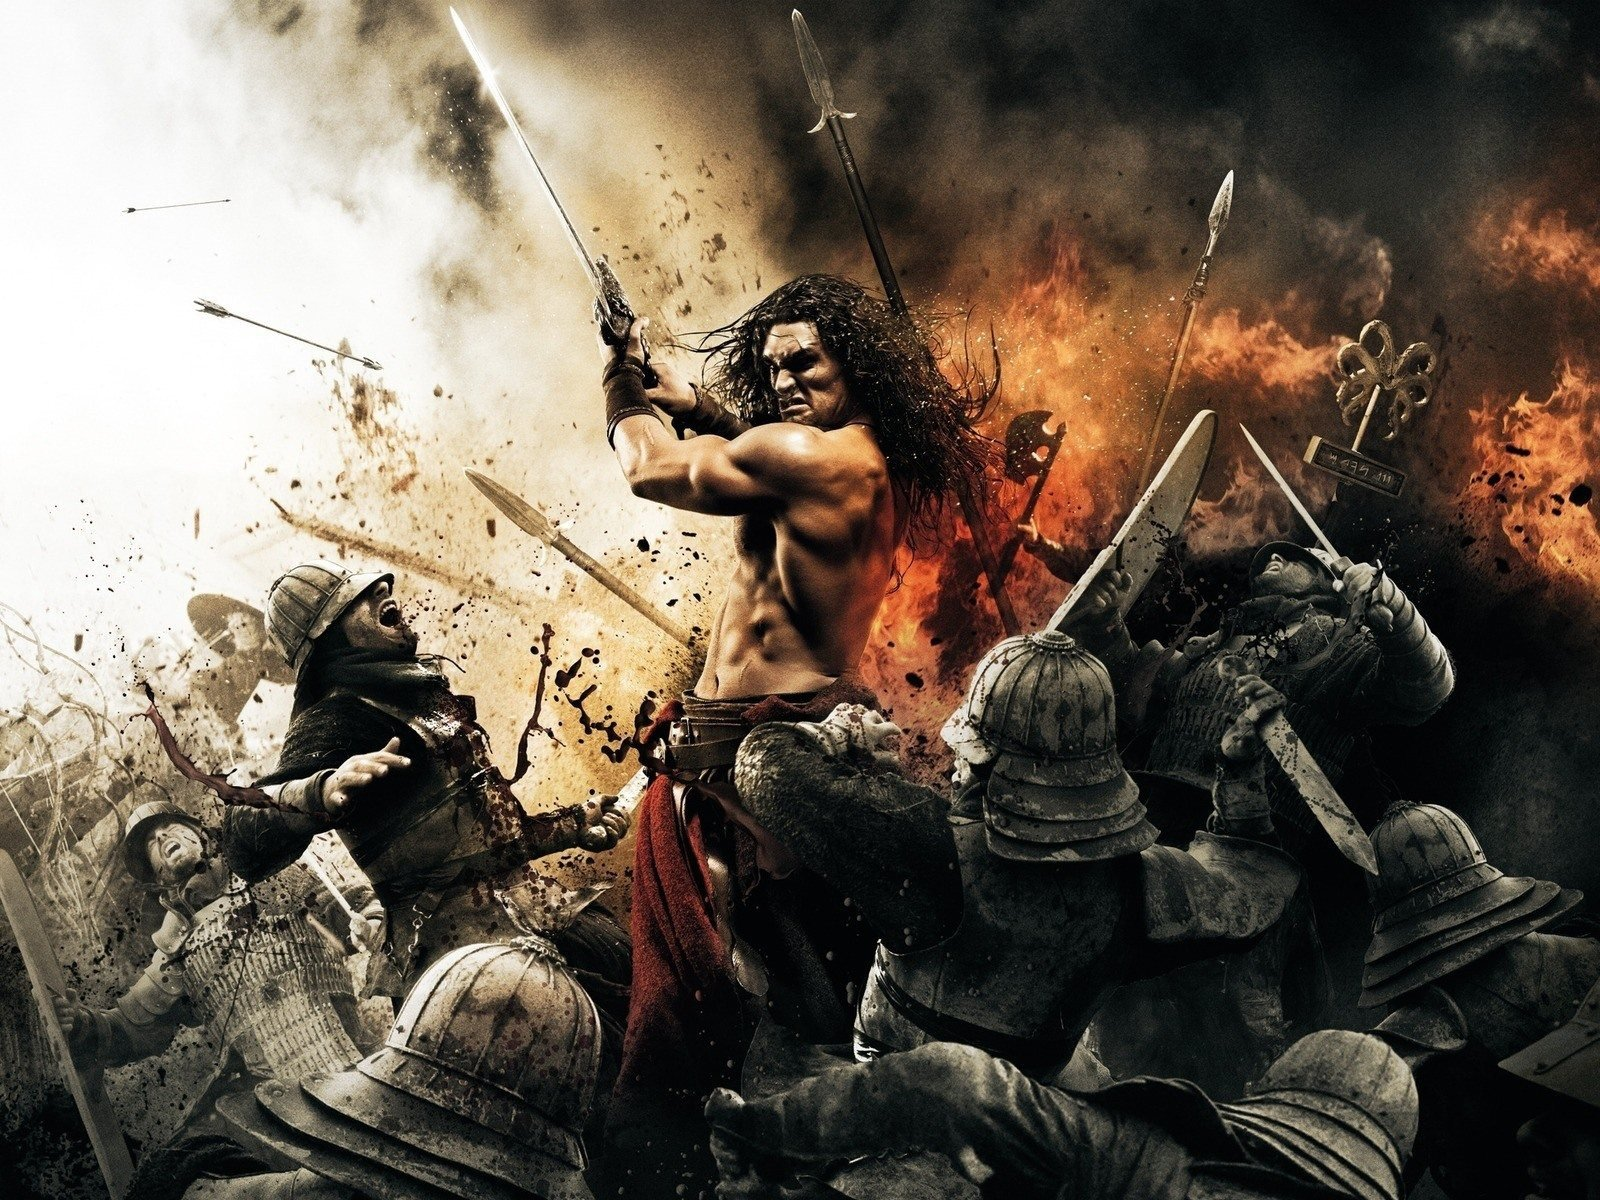 Conan the Barbarian movie wallpaper 1600x1200 Movie Wallpapers 1600x1200